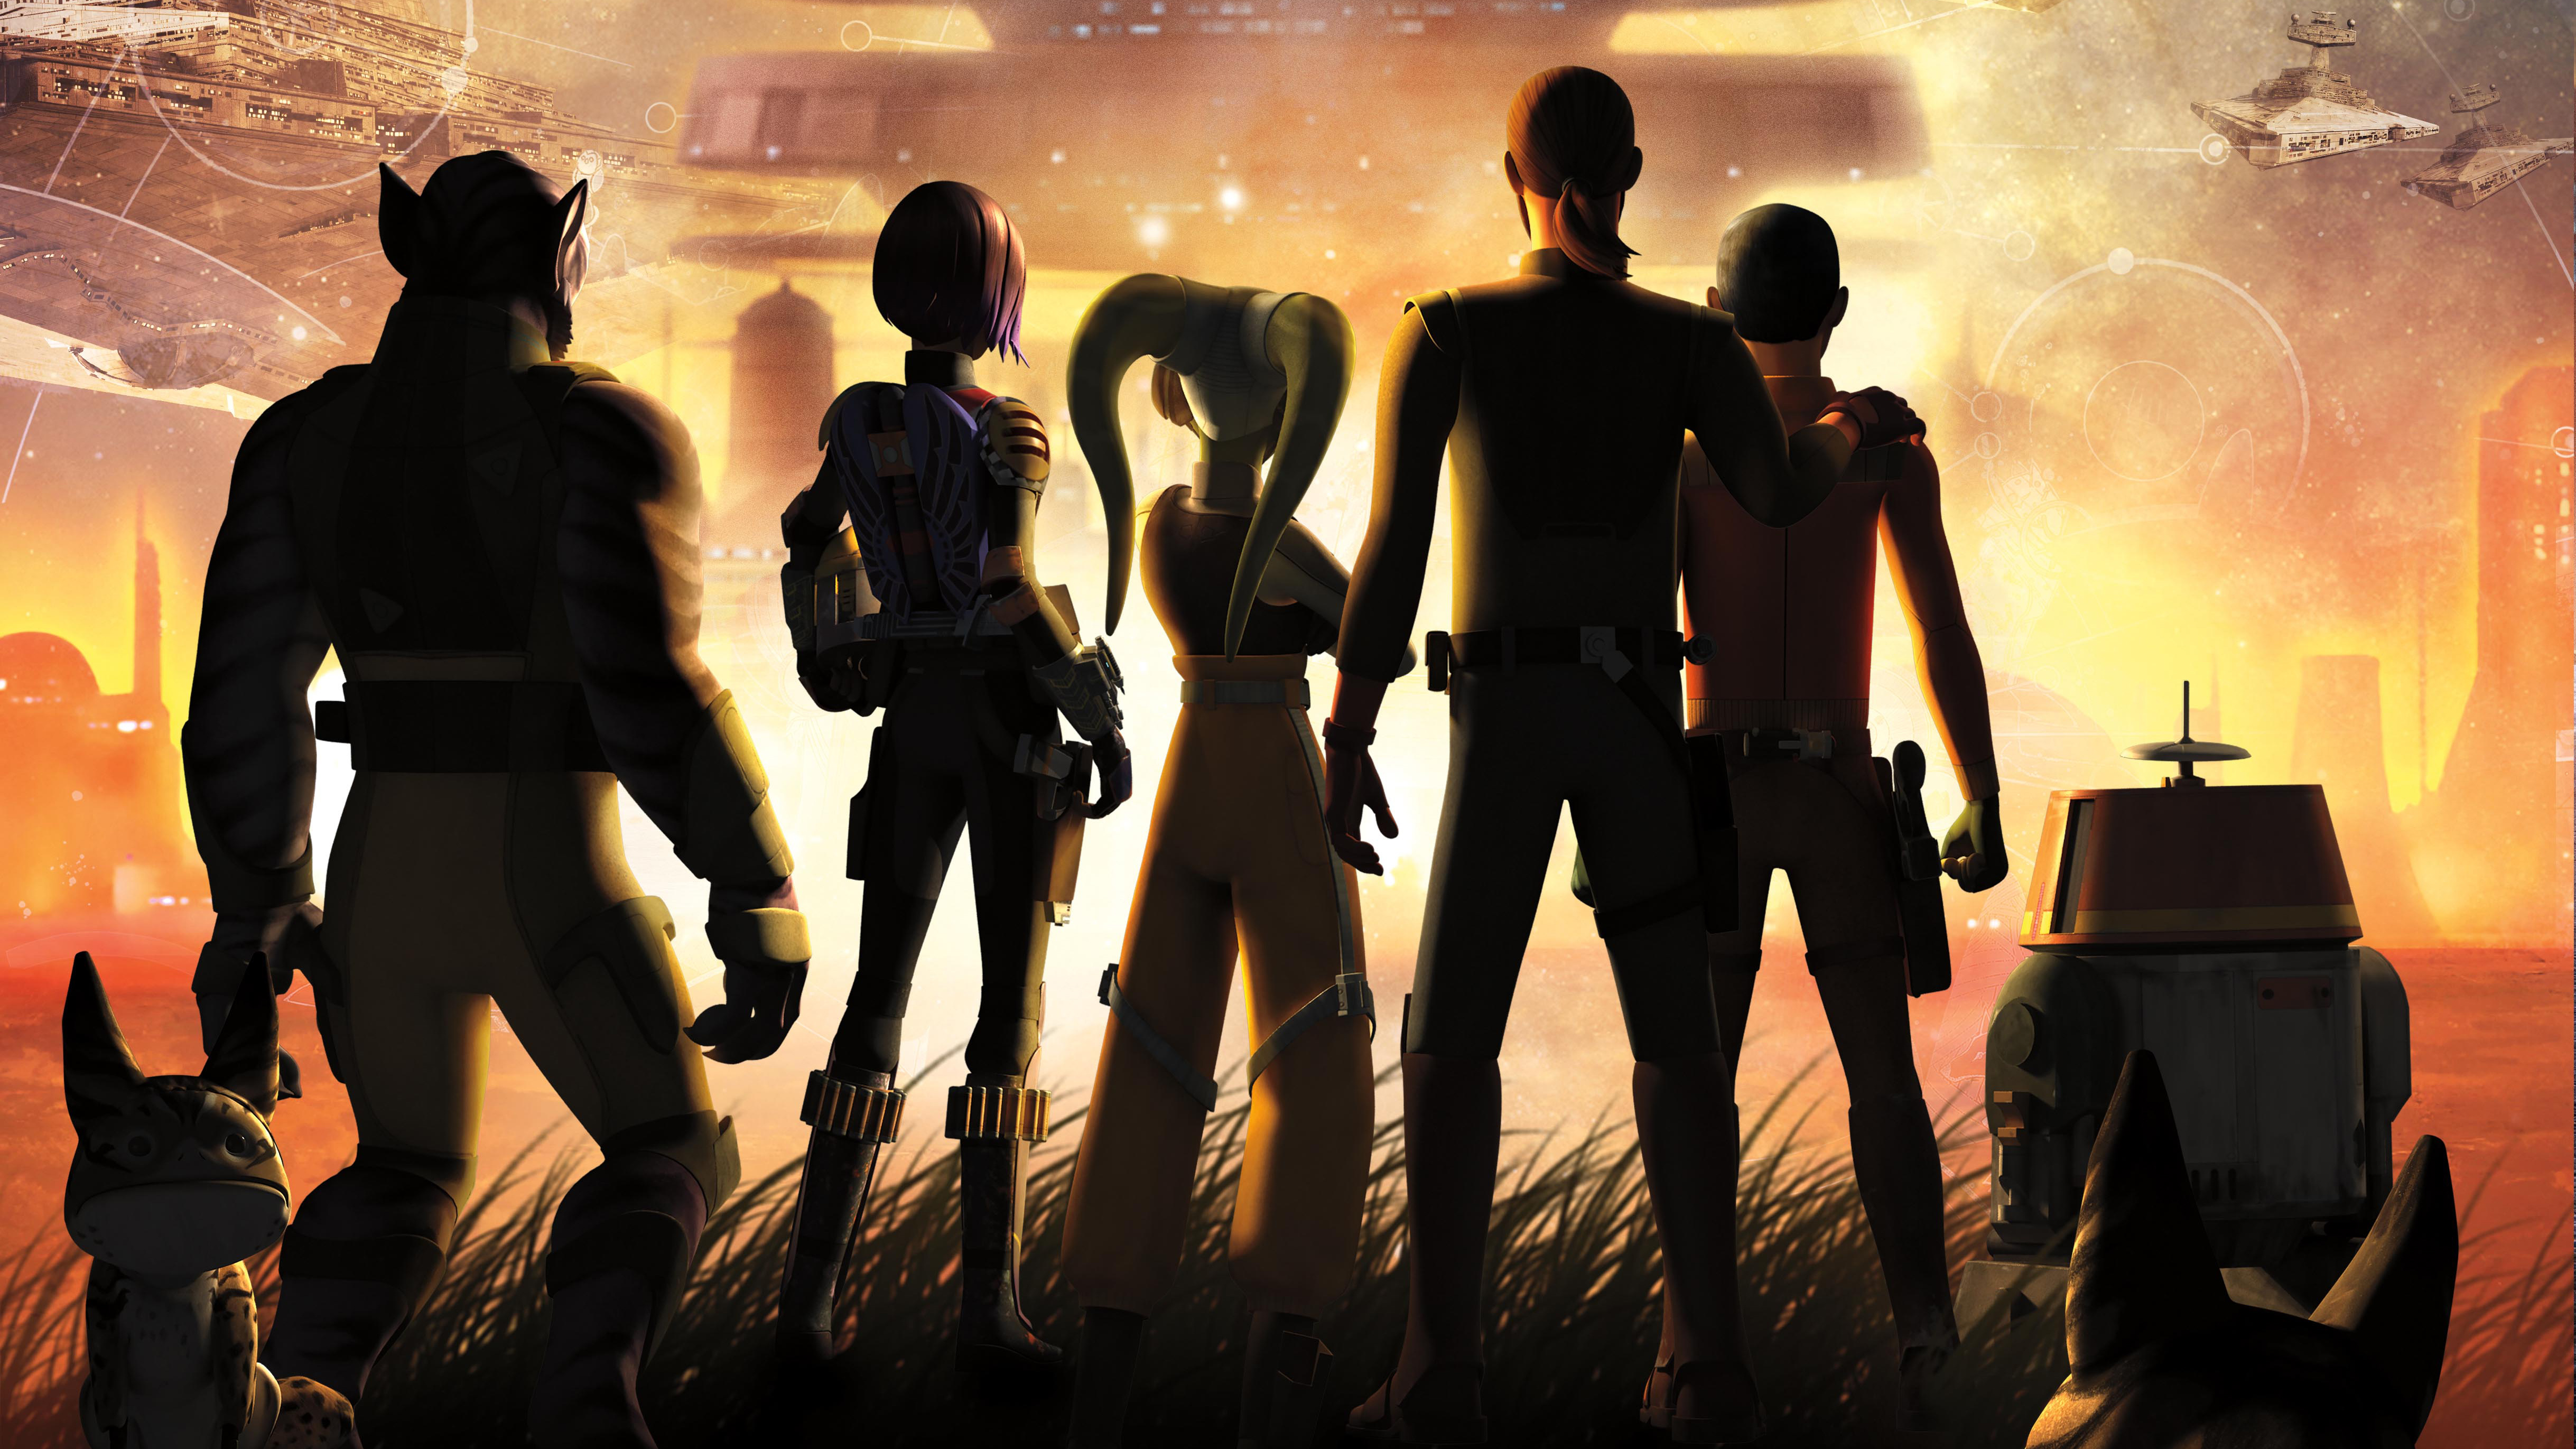 Star Wars Rebels Key Art Hd Tv Shows 4k Wallpapers Images Backgrounds Photos And Pictures